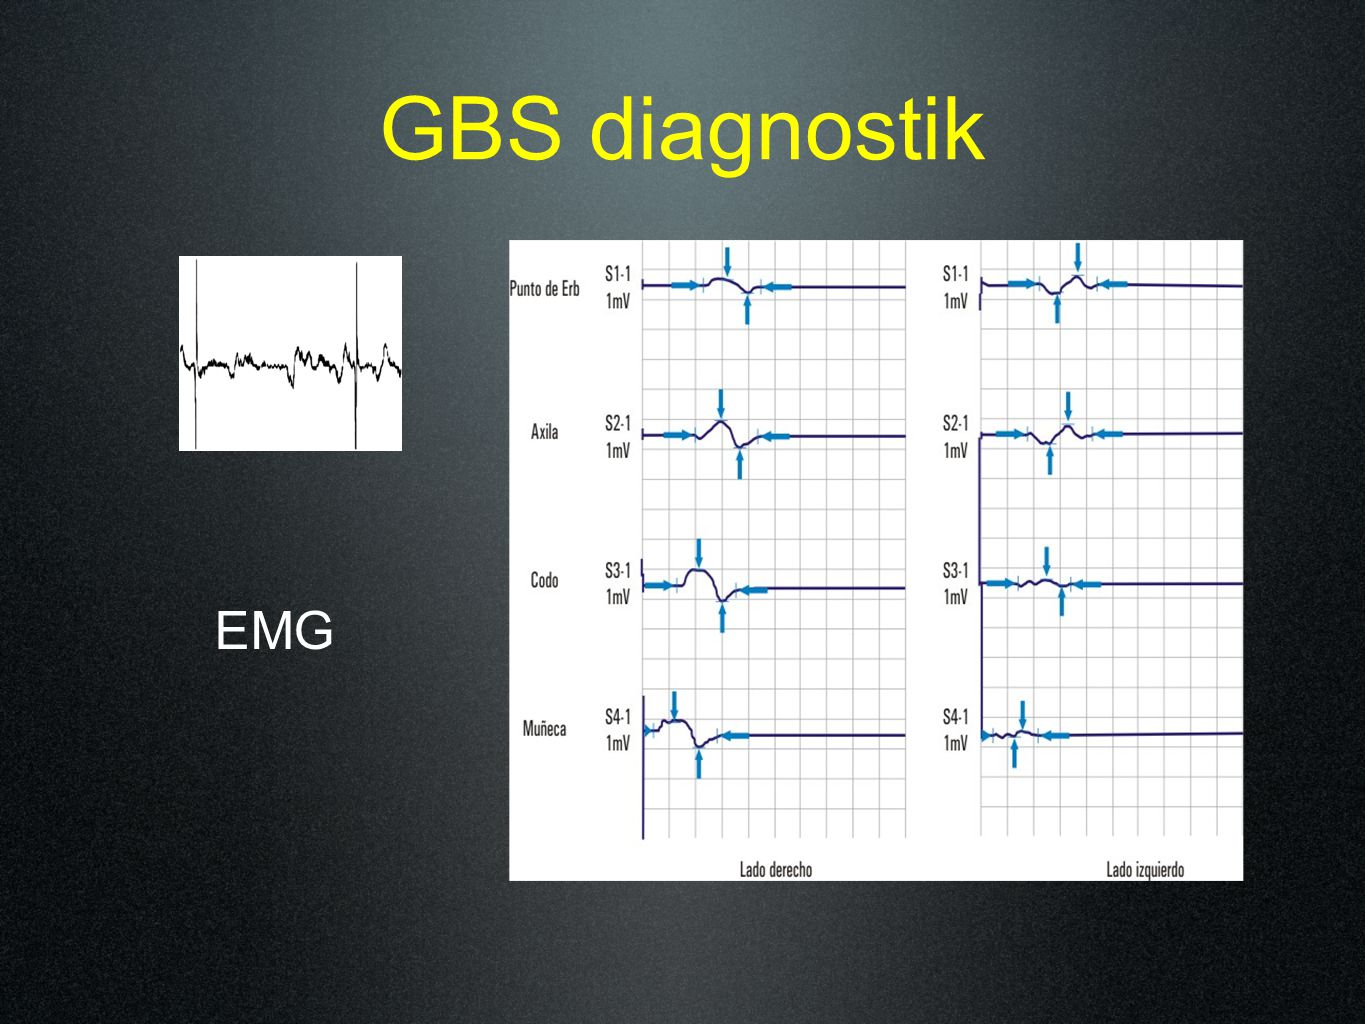 GBS diagnostik EMG